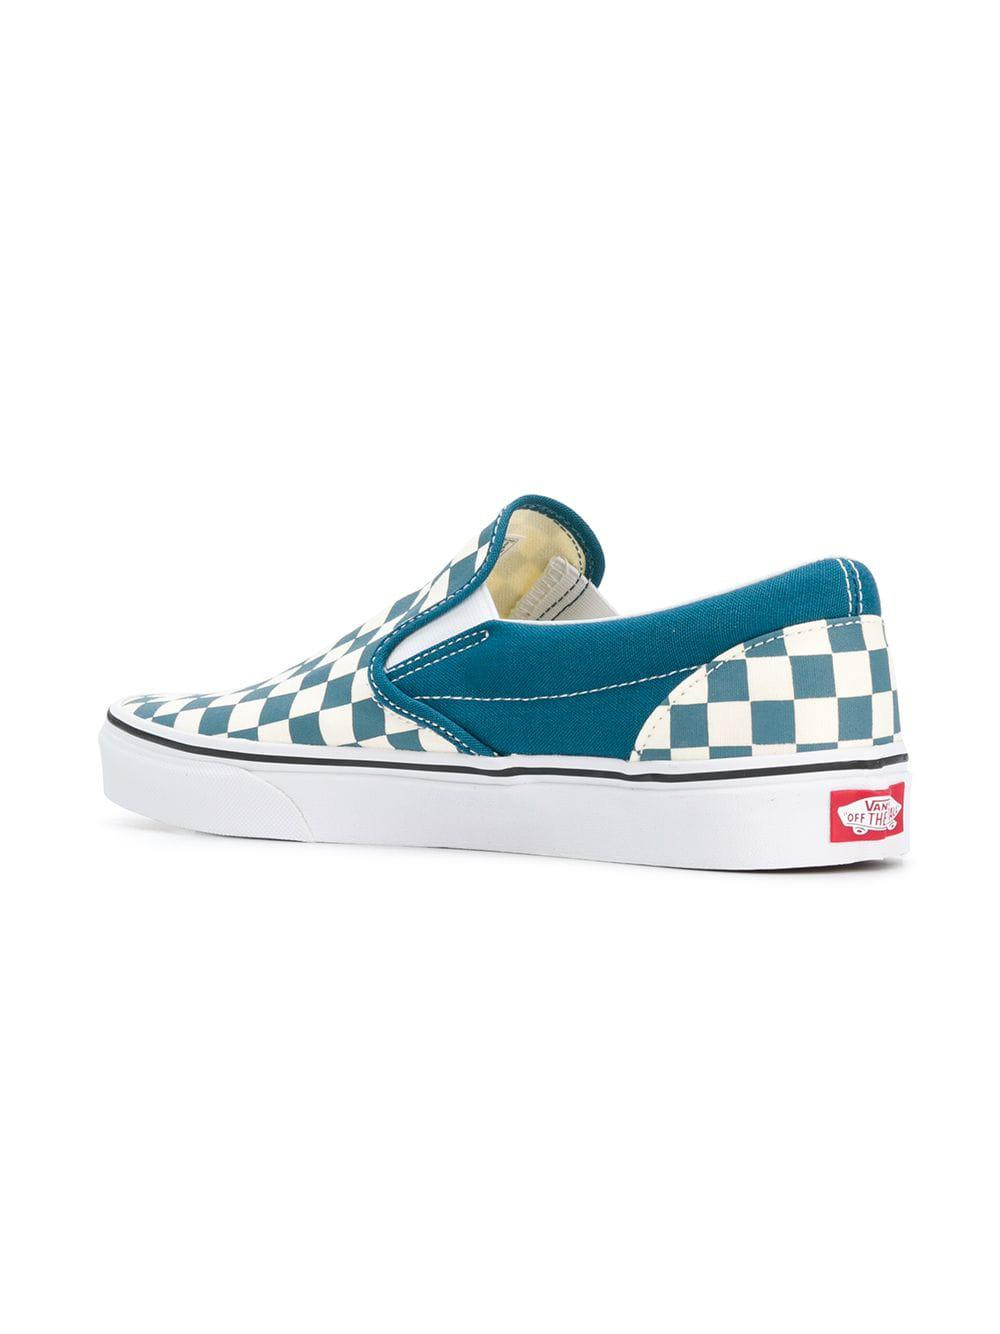 fd1d7f42a3fec6 Lyst - Vans Color Theory Checkerboard Sneakers in Blue for Men